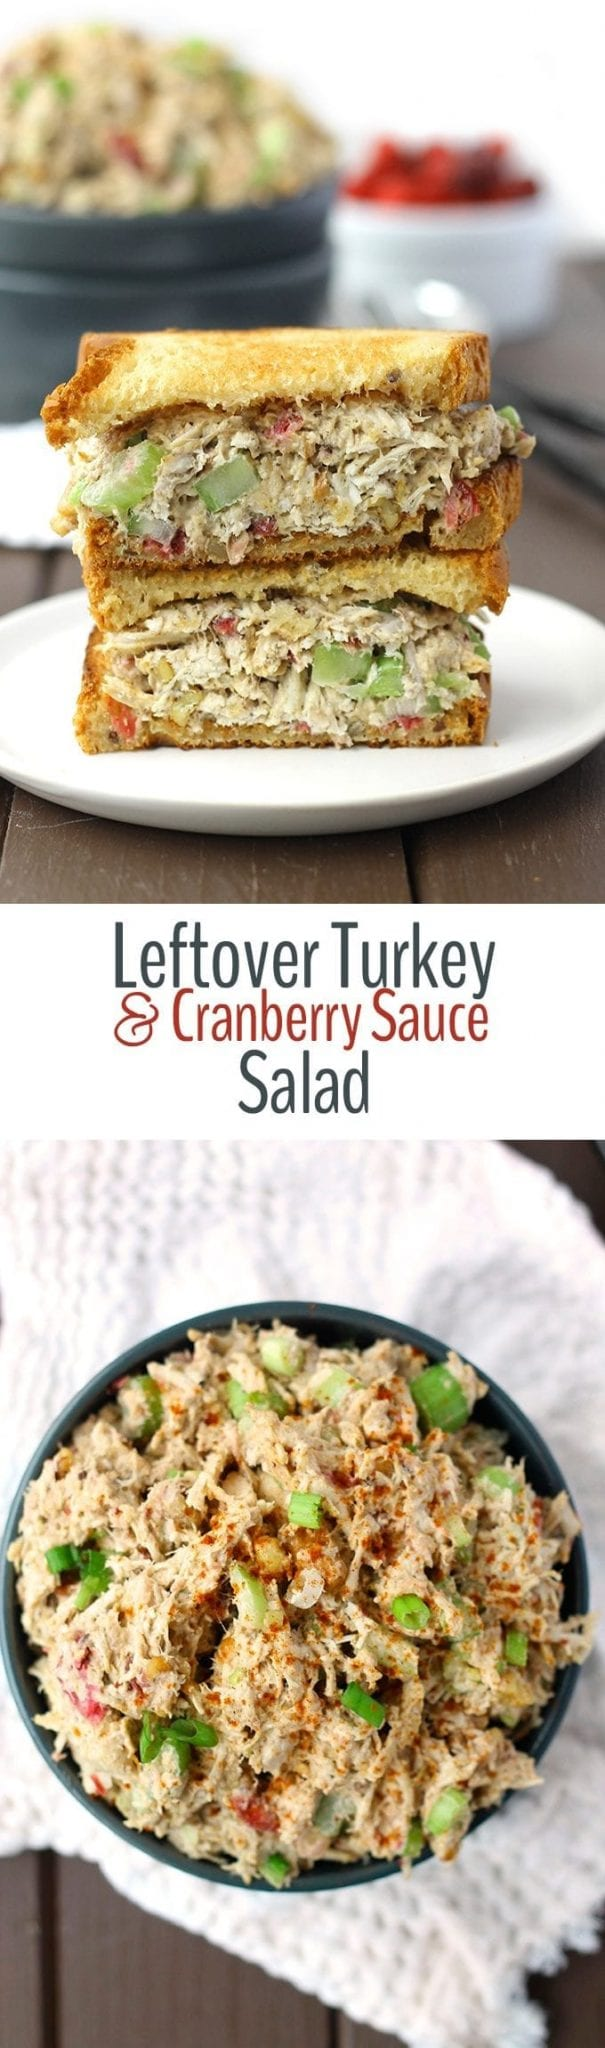 Not sure what to do with all of those Thanksgiving leftovers? Repurpose them in this Leftover Turkey and Cranberry Sauce Salad! It's delicious and a healthy alternative for the days after Thanksgiving!